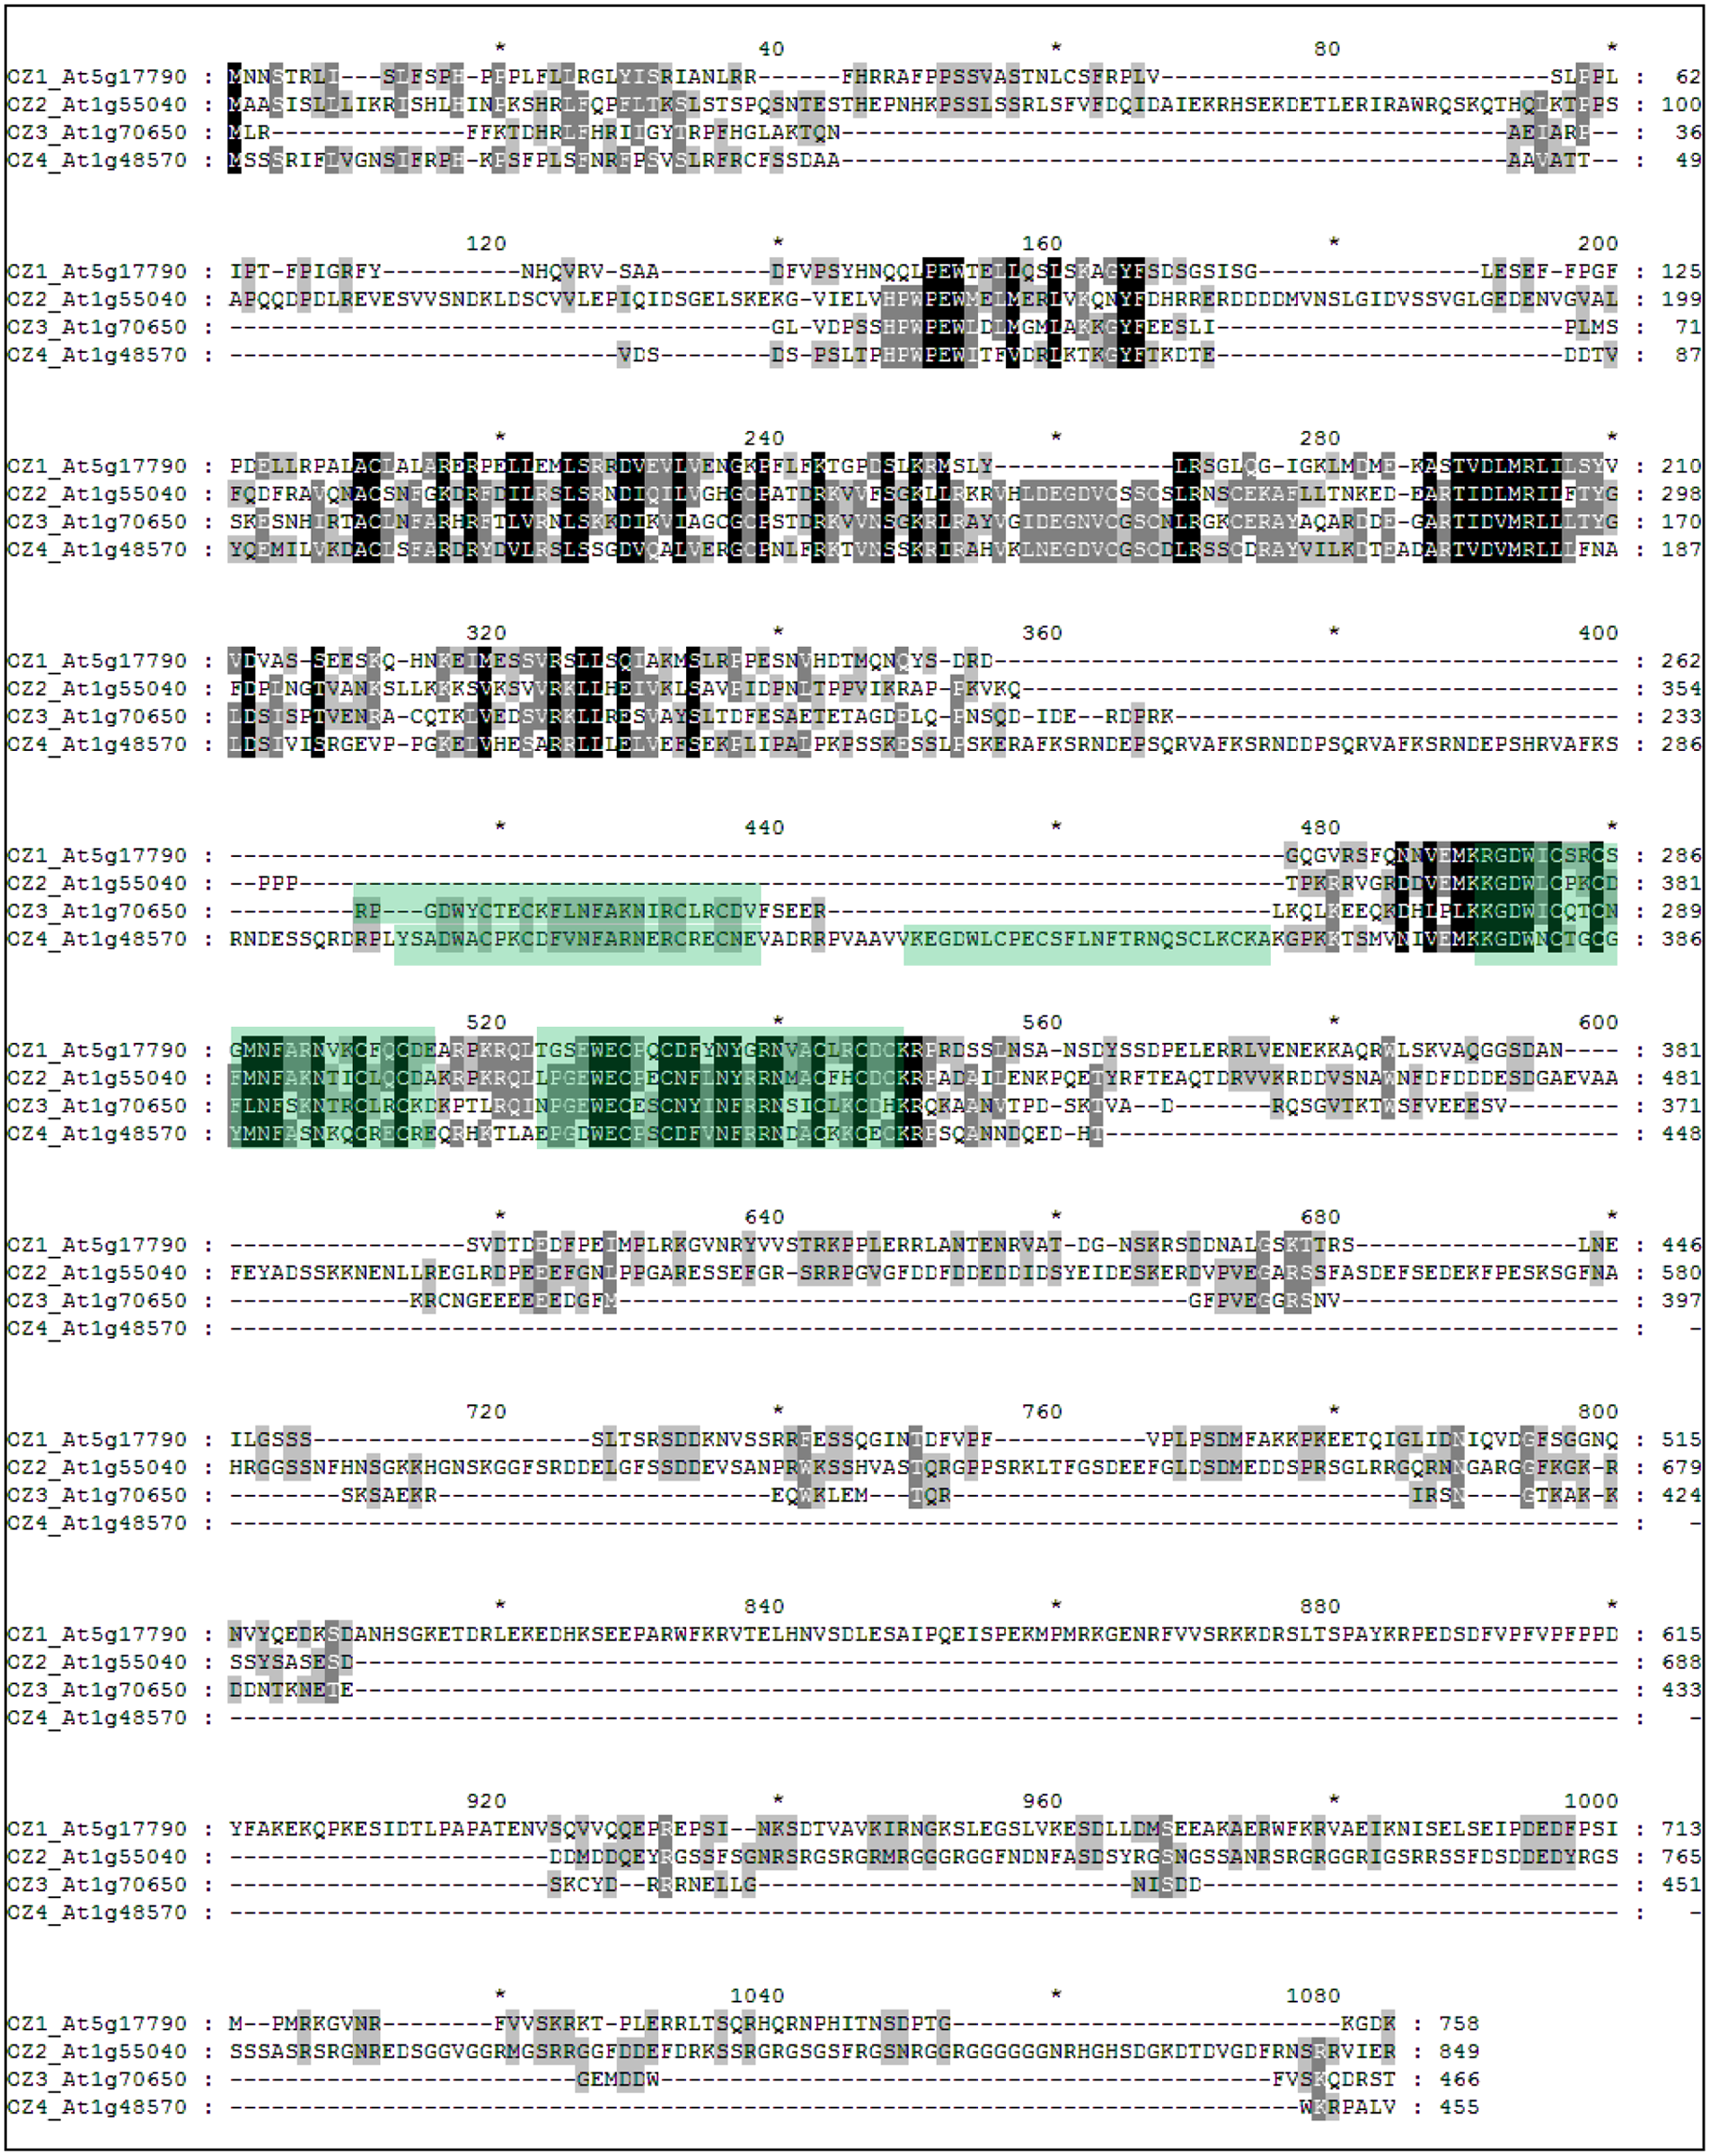 OZ1 belongs to a small family in Arabidopsis.